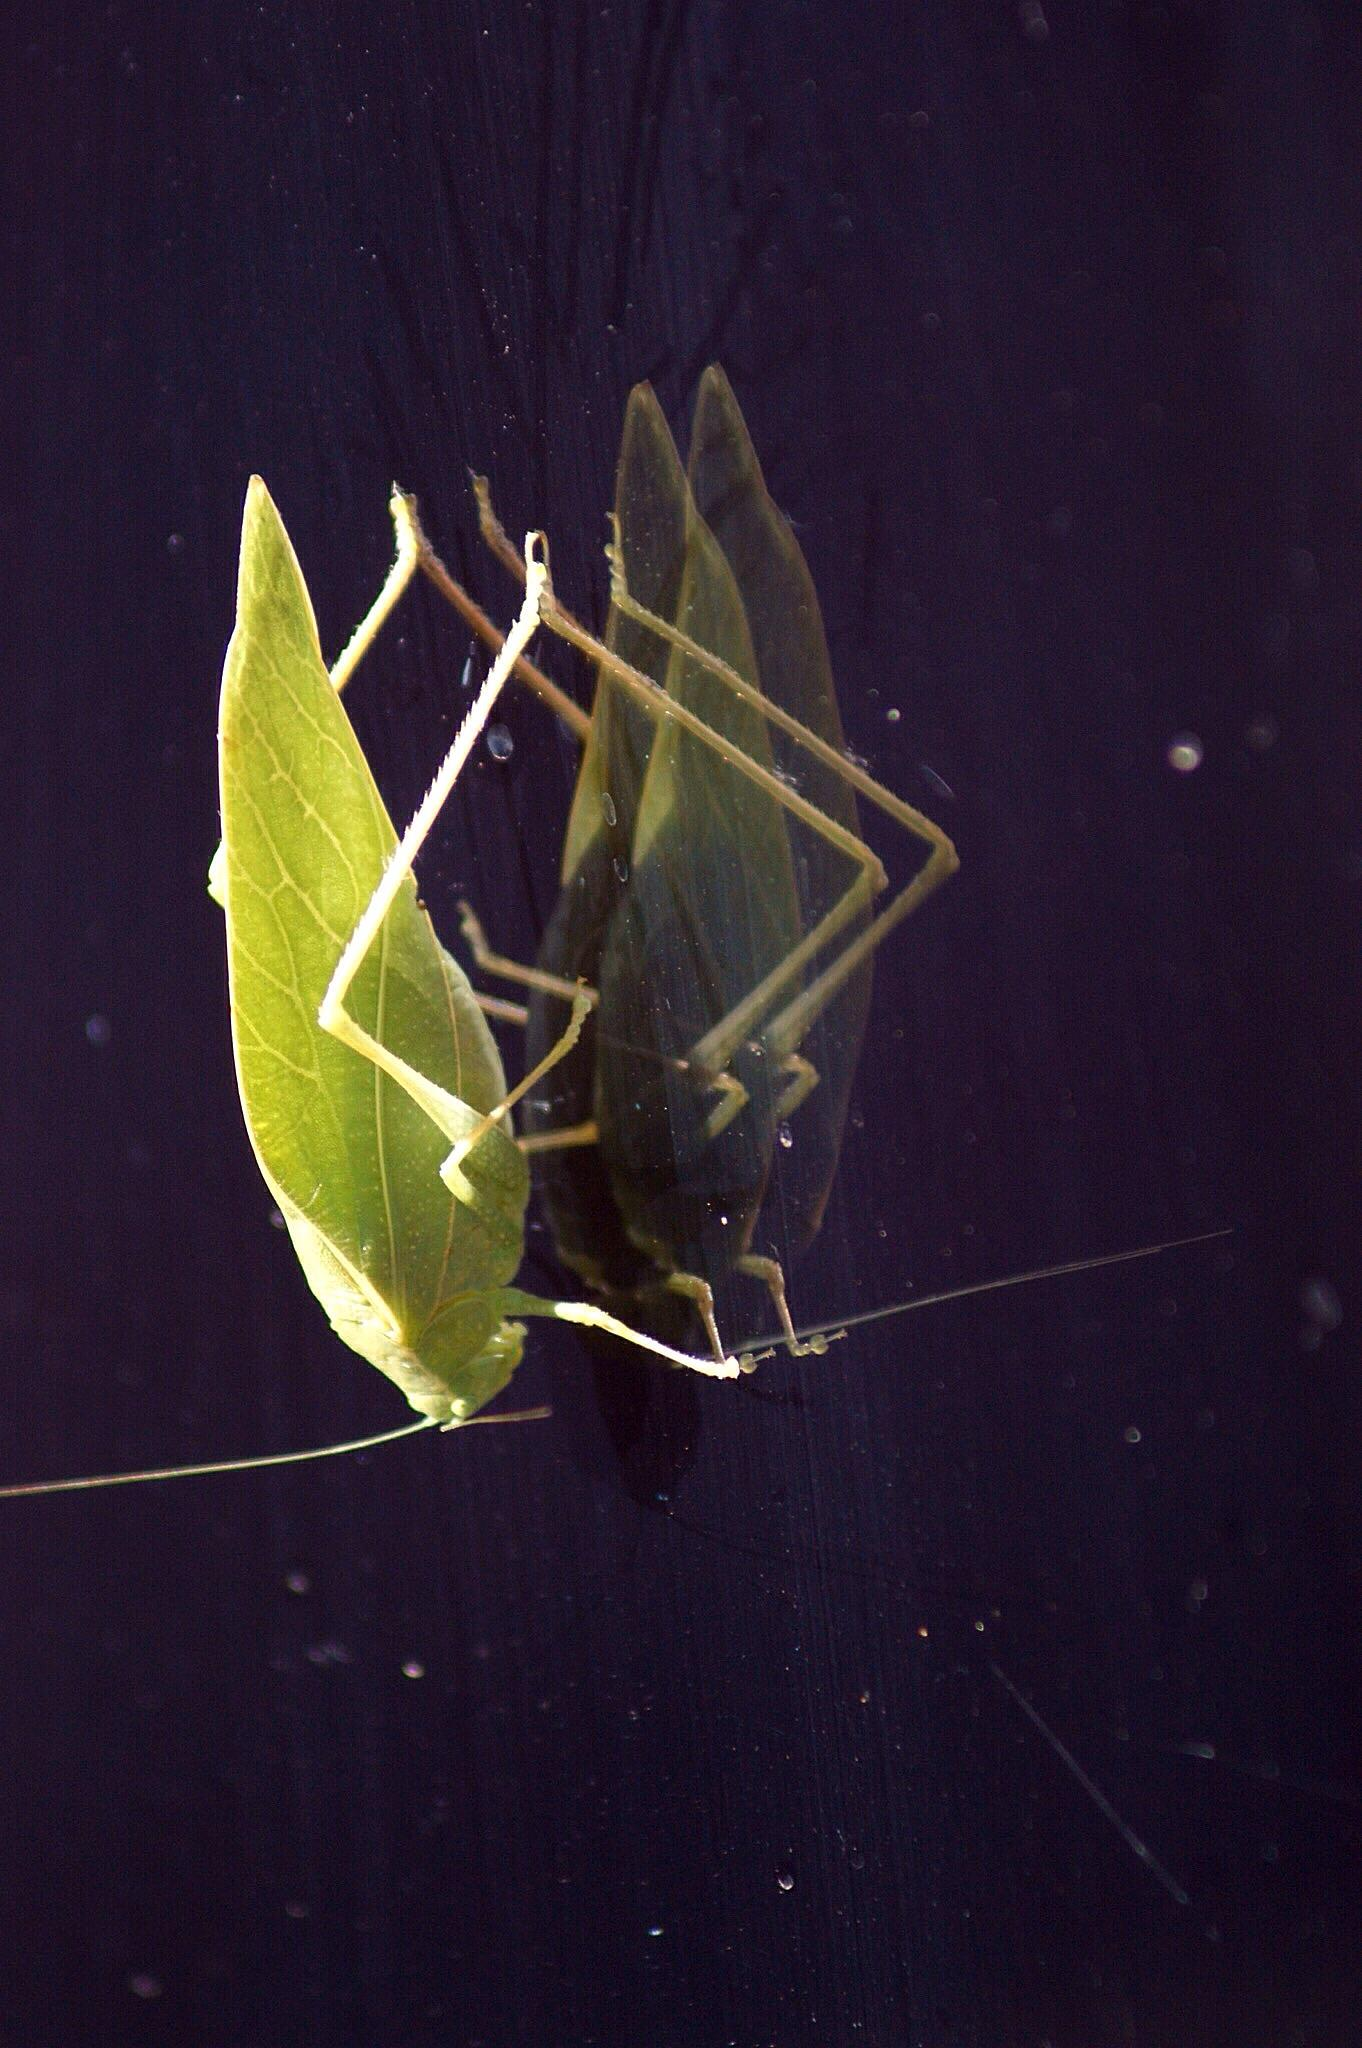 Leafhopper On Glass by Stefani Madison